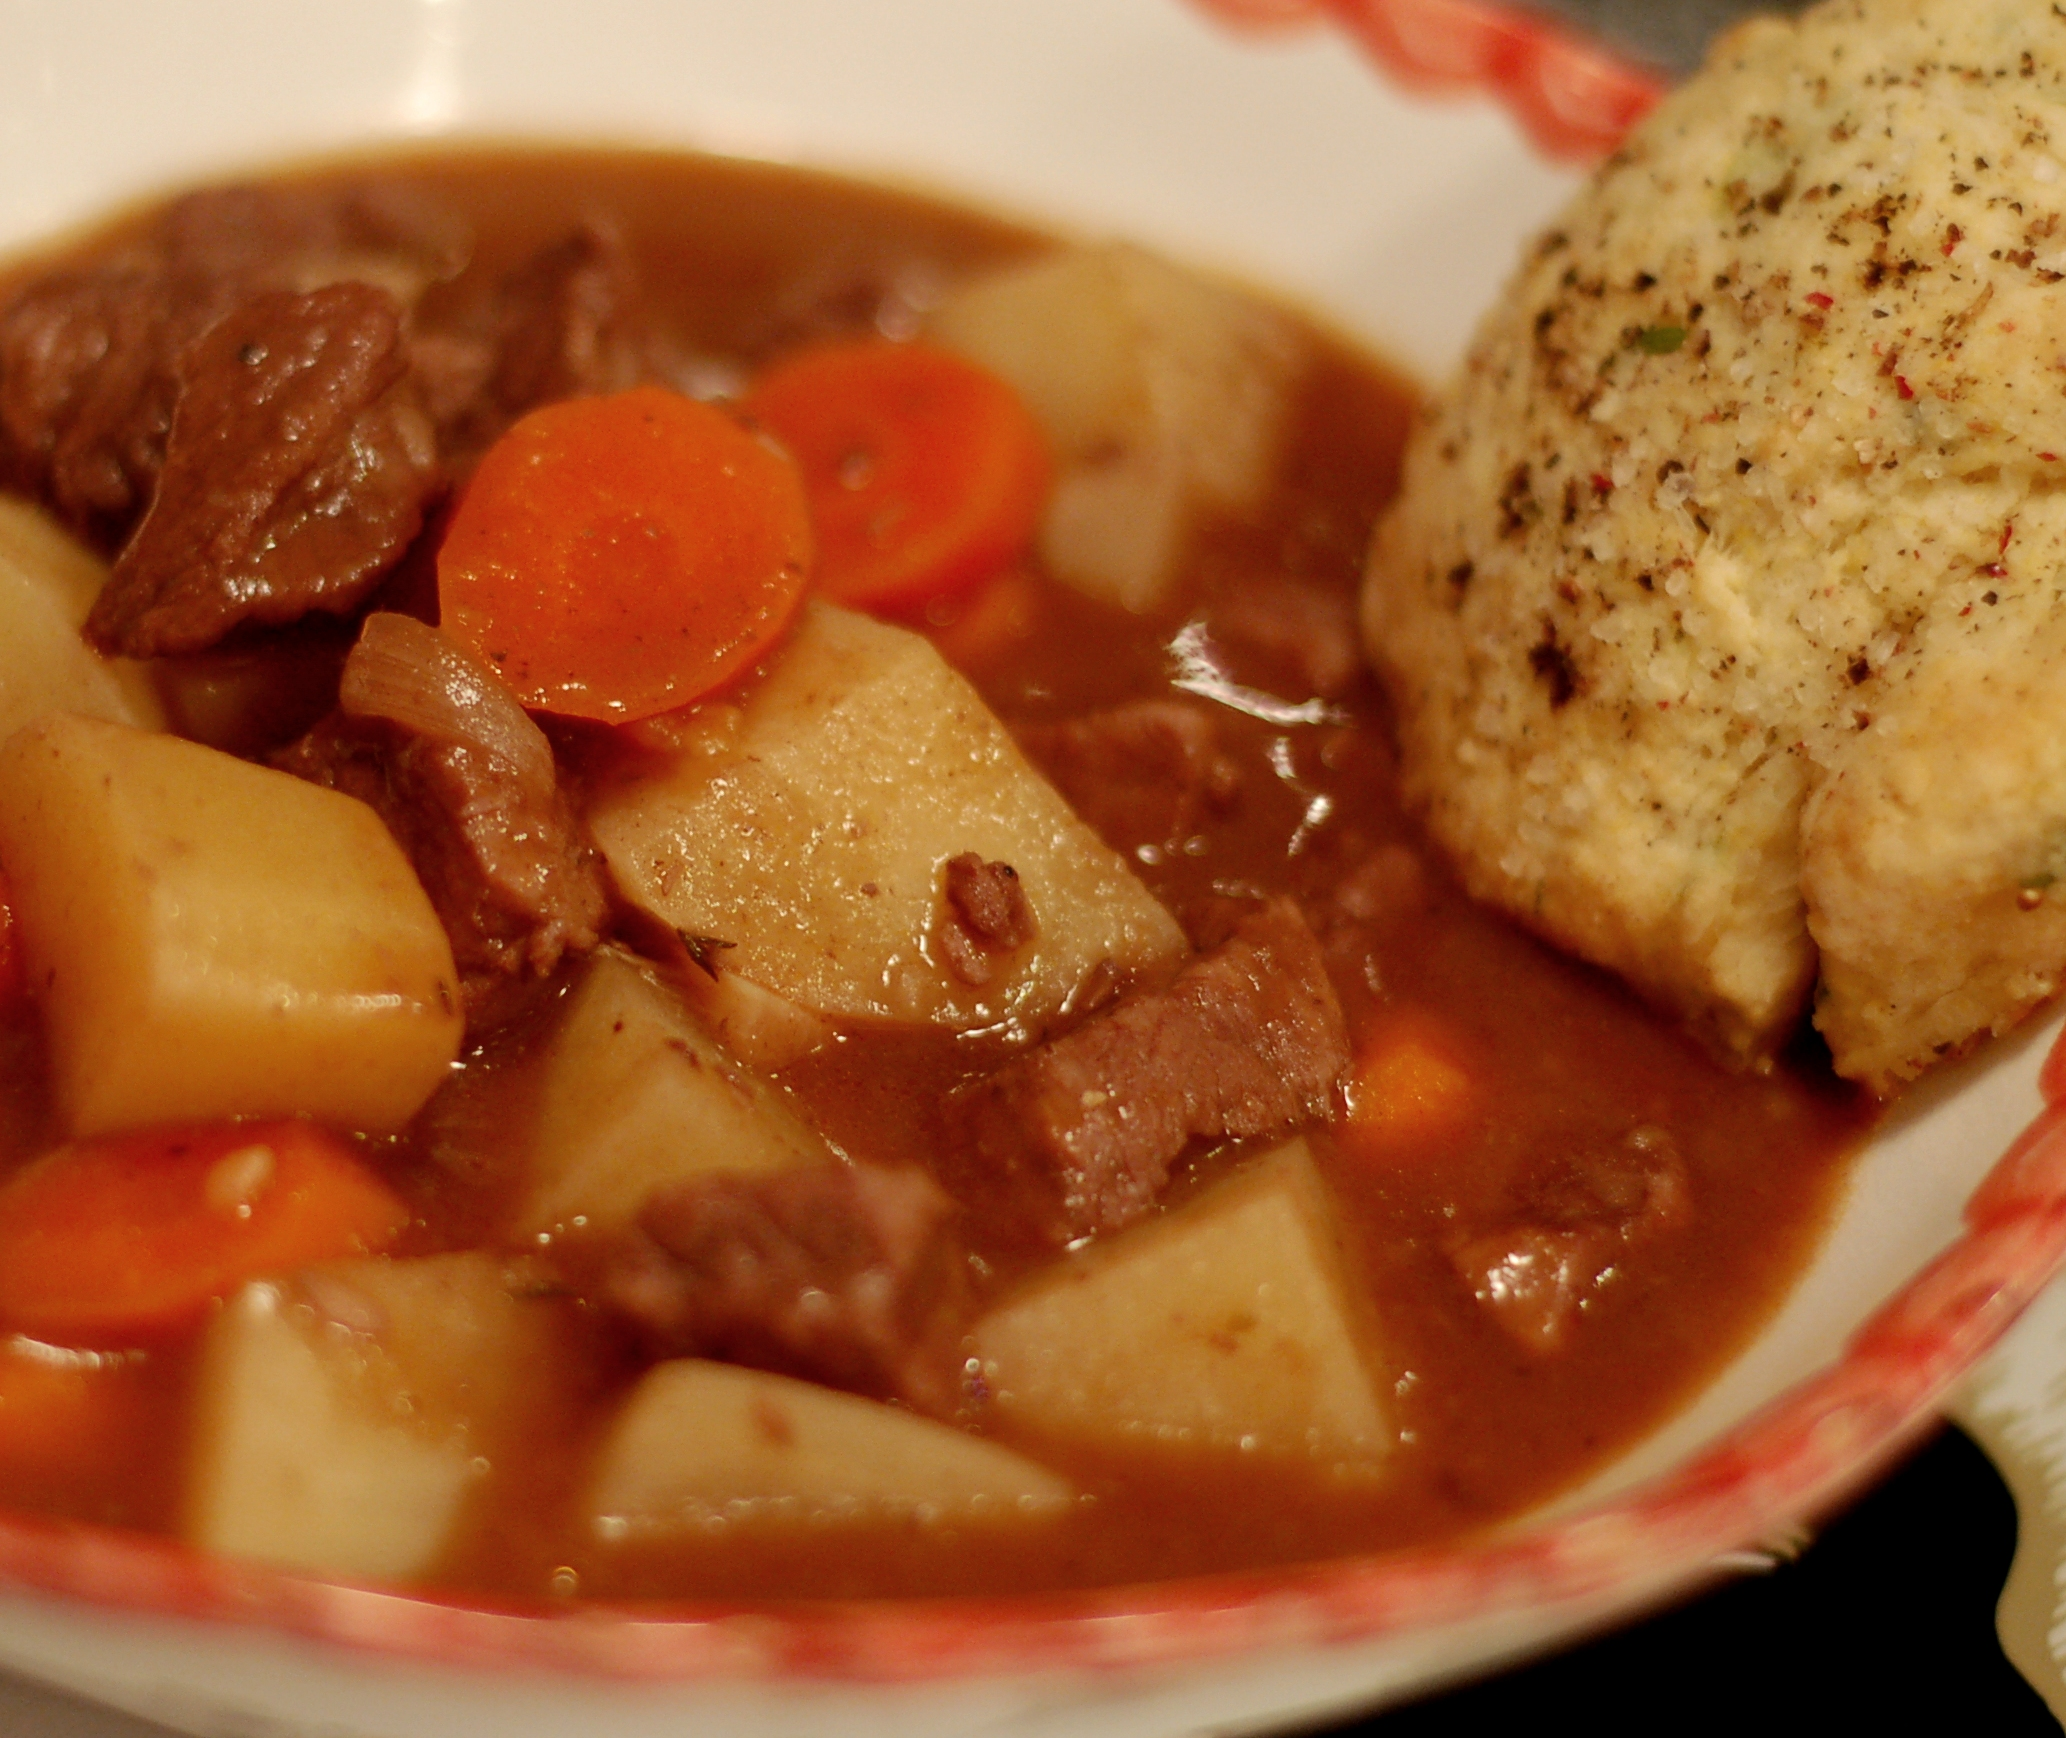 ... lamb stew lamb and broccoli stew 10 best slow cooked lamb stew